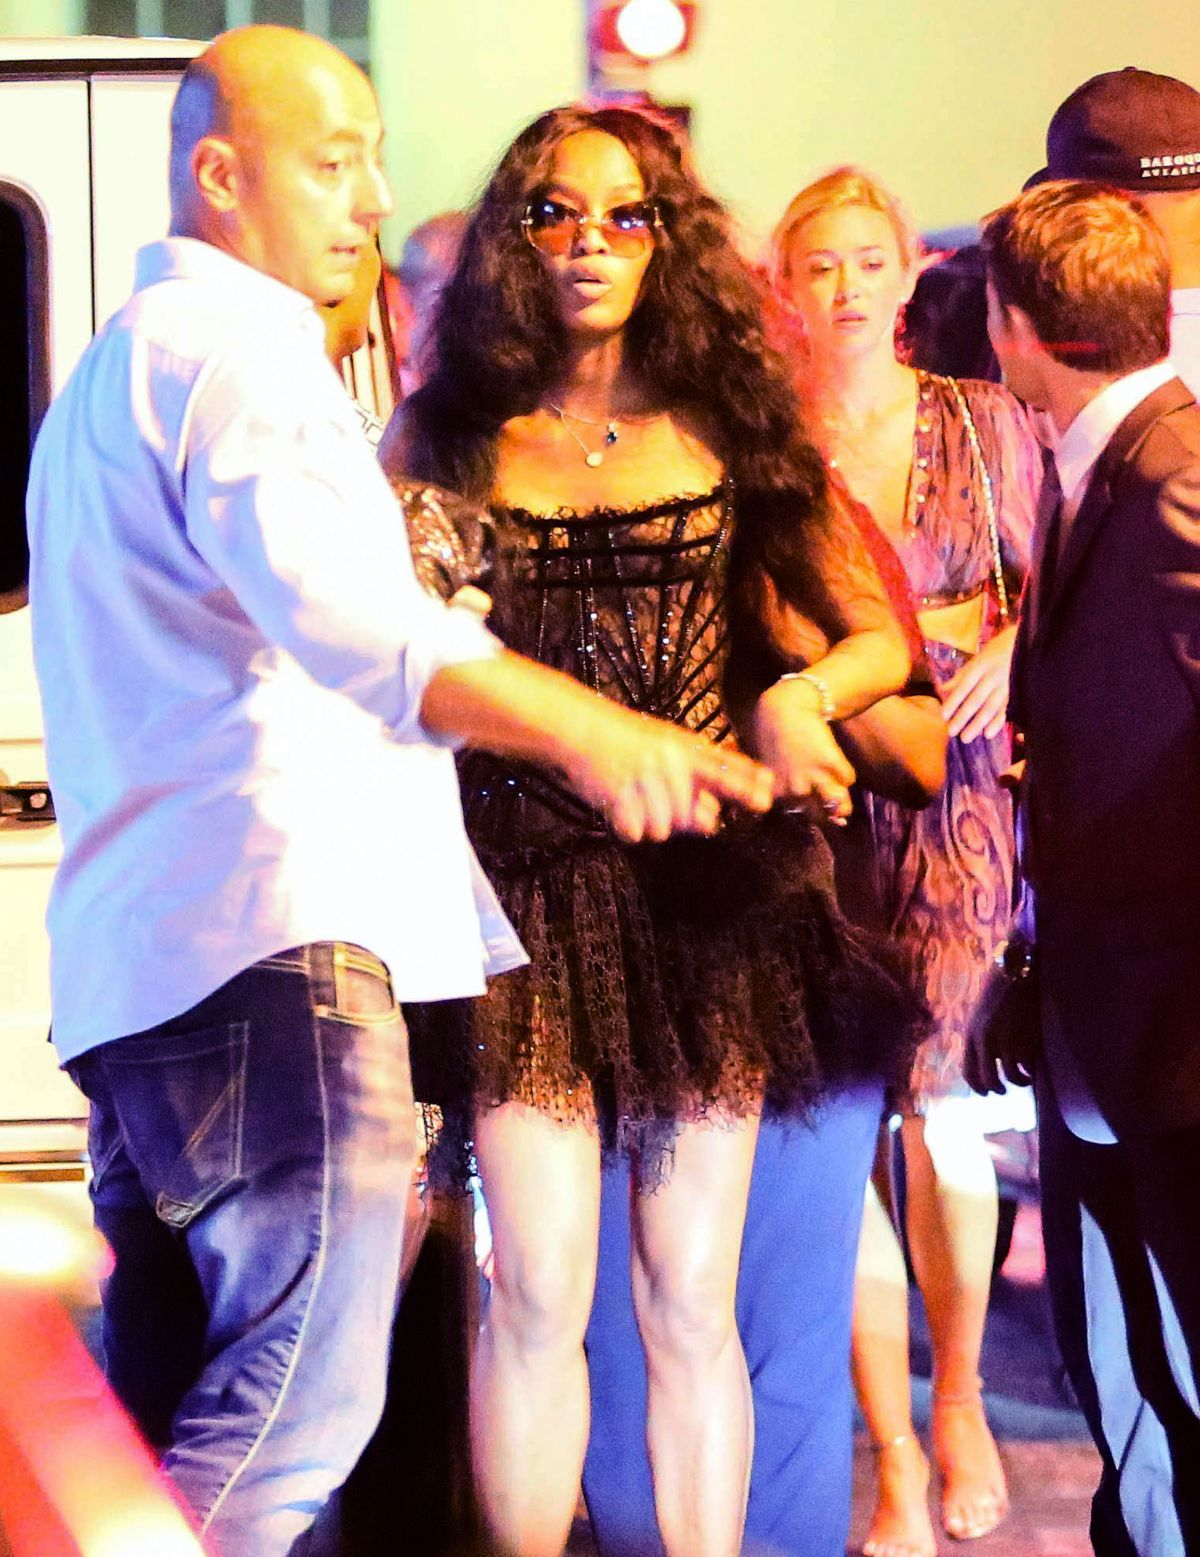 naomi campbell at vip room in st tropez 07 23 2015 hawtcelebs. Black Bedroom Furniture Sets. Home Design Ideas